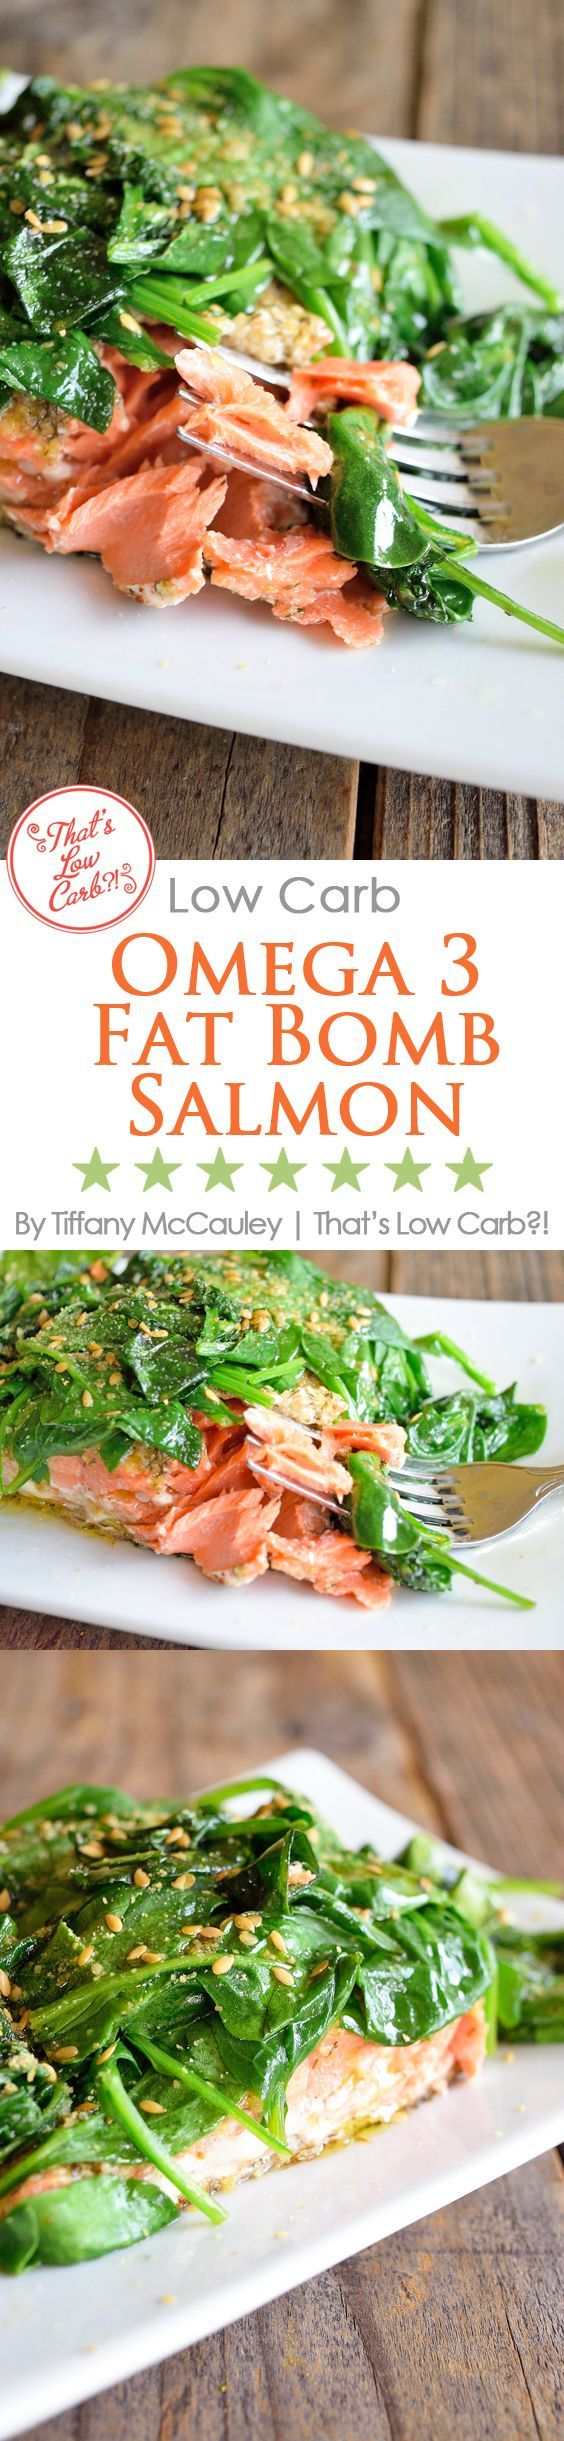 Low Carb Recipes | Omega 3 Fat Bomb Salmon Recipe | Salmon Recipes | Dinner Recipes